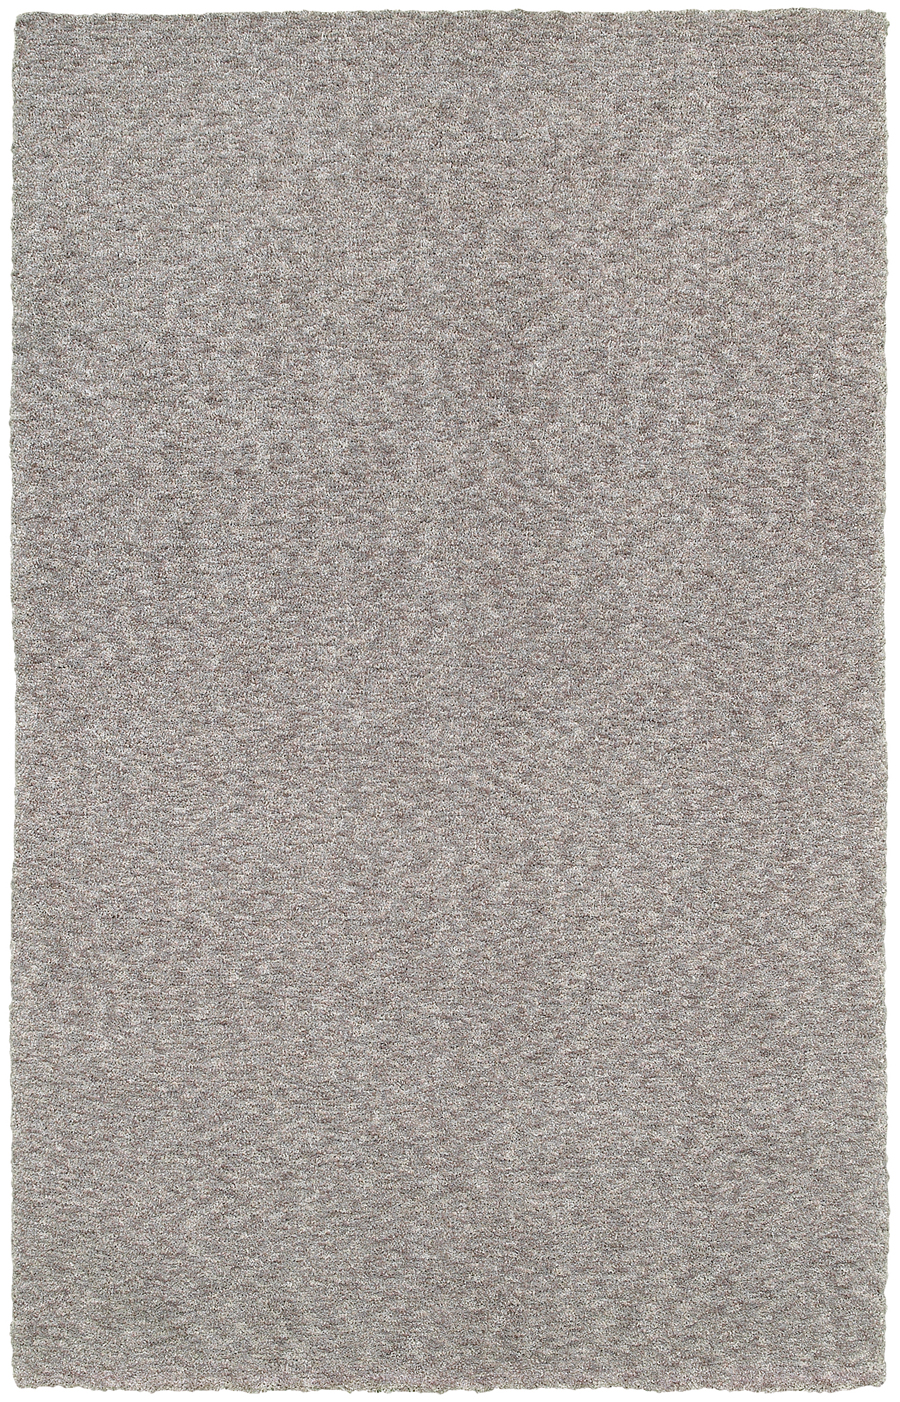 Oriental Weavers Sphinx Heavenly 73407 Rug